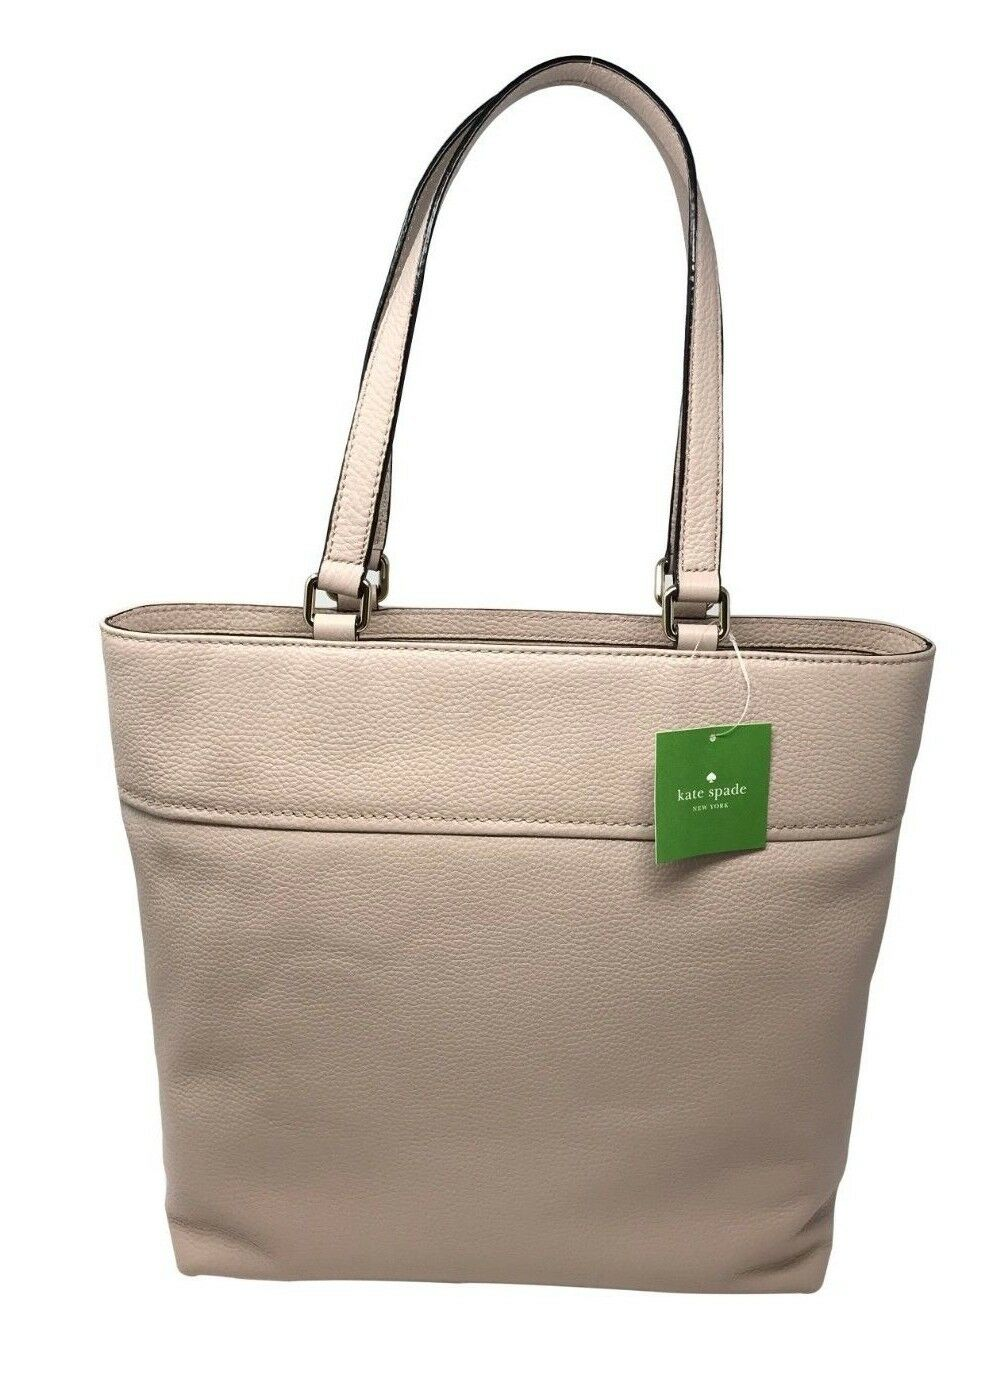 Kate Spade Cobble Hill Tayler Rose Cloud Leather Large Tote Bag PXRU7251 $298